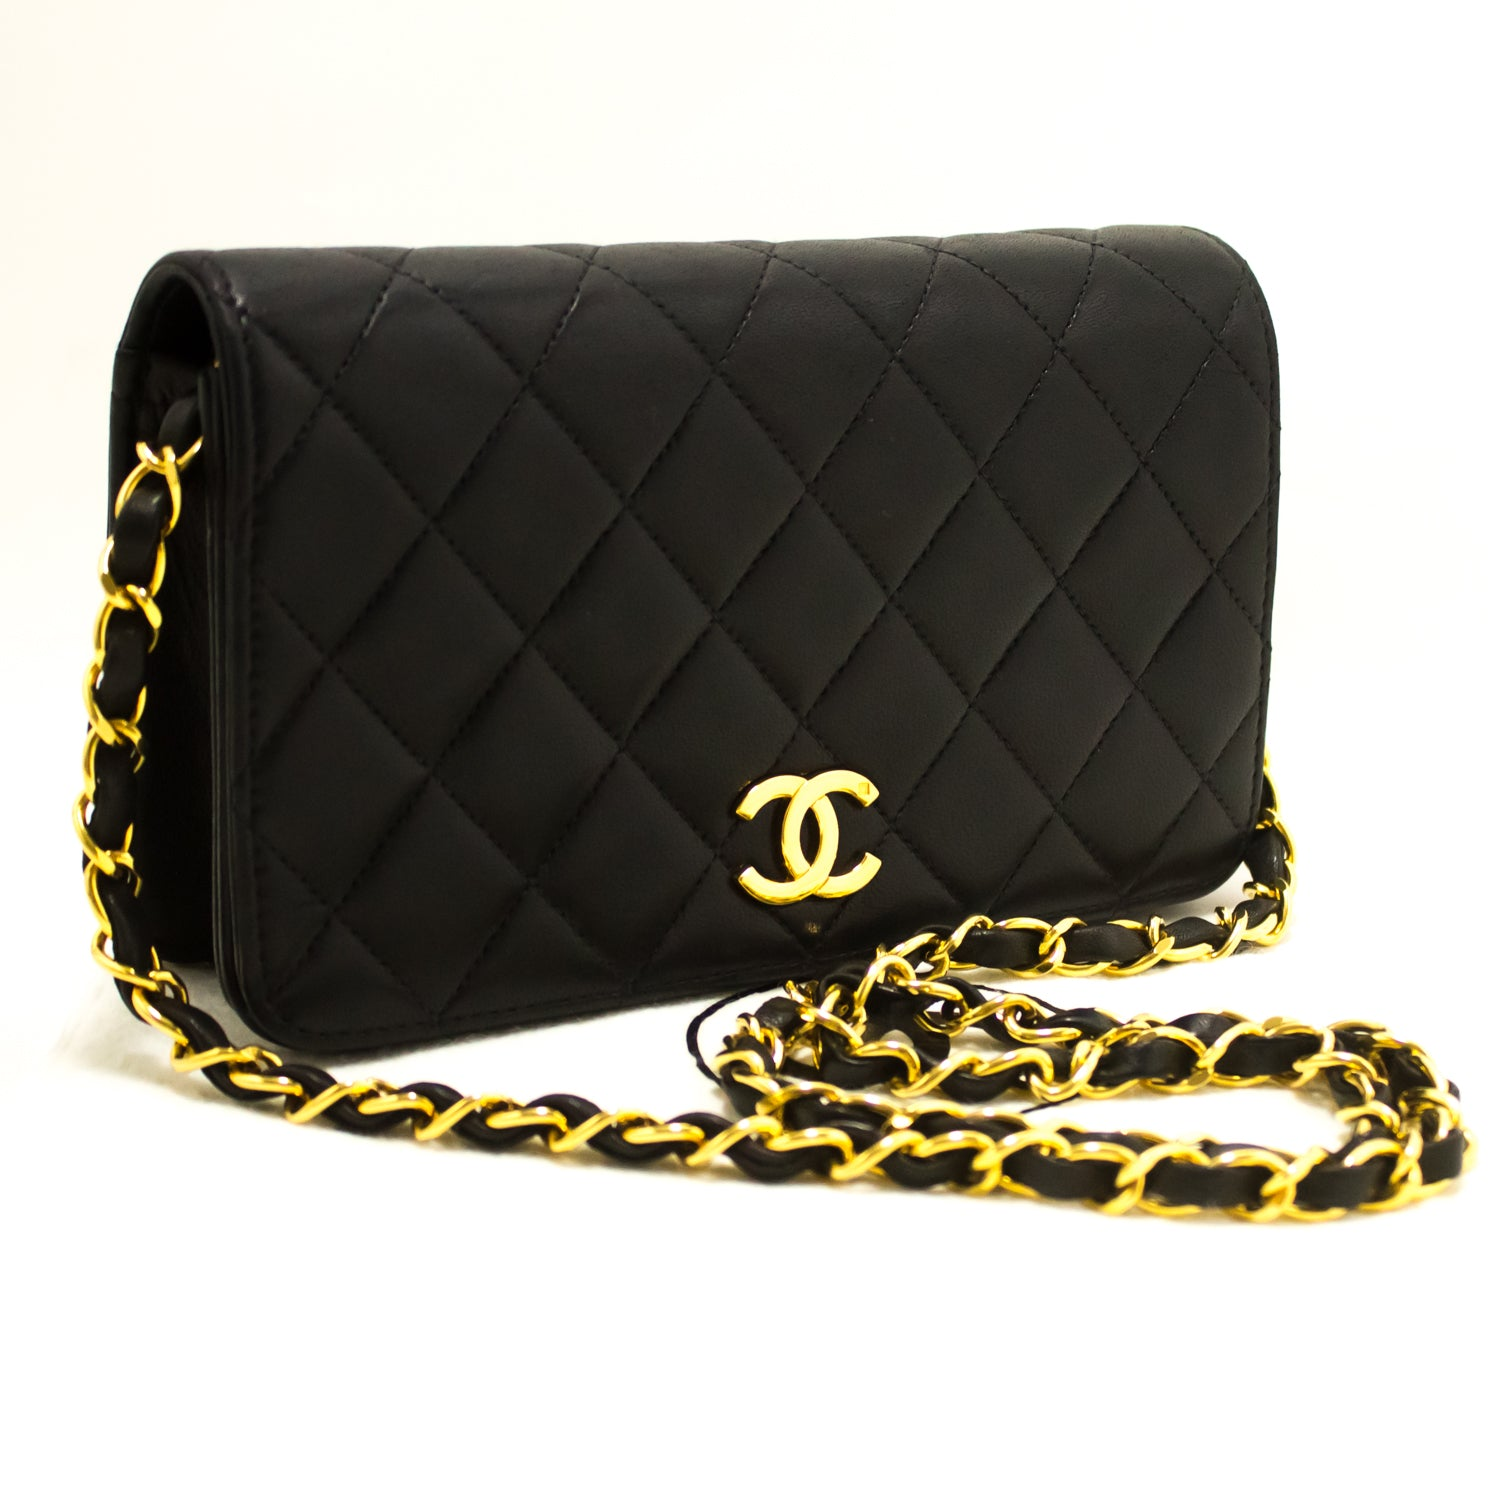 bbc295c13db8aa ... CHANEL Chain Shoulder Bag Clutch Black Quilted Flap Lambskin Purse n15- Chanel-hannari- ...